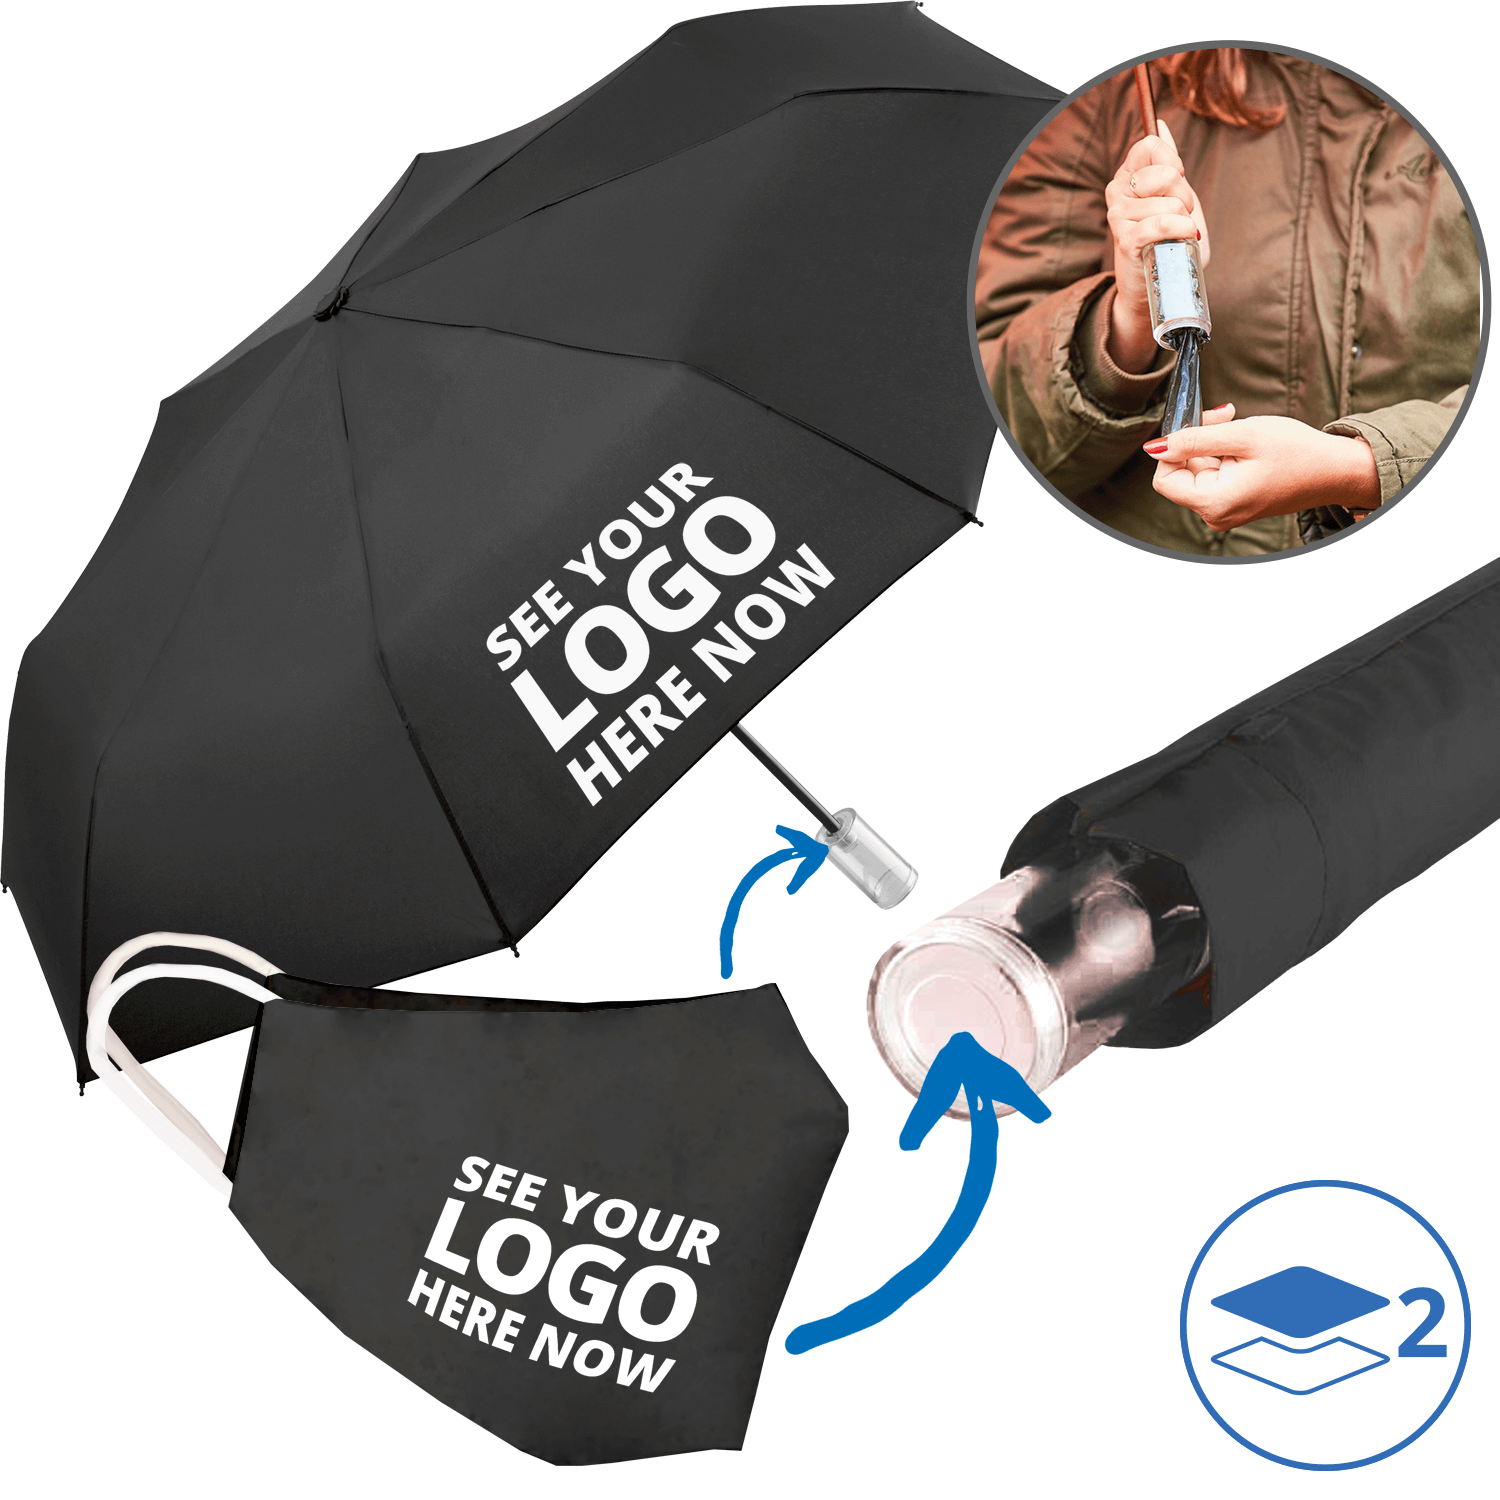 Branded Mask and Umbrella Combo